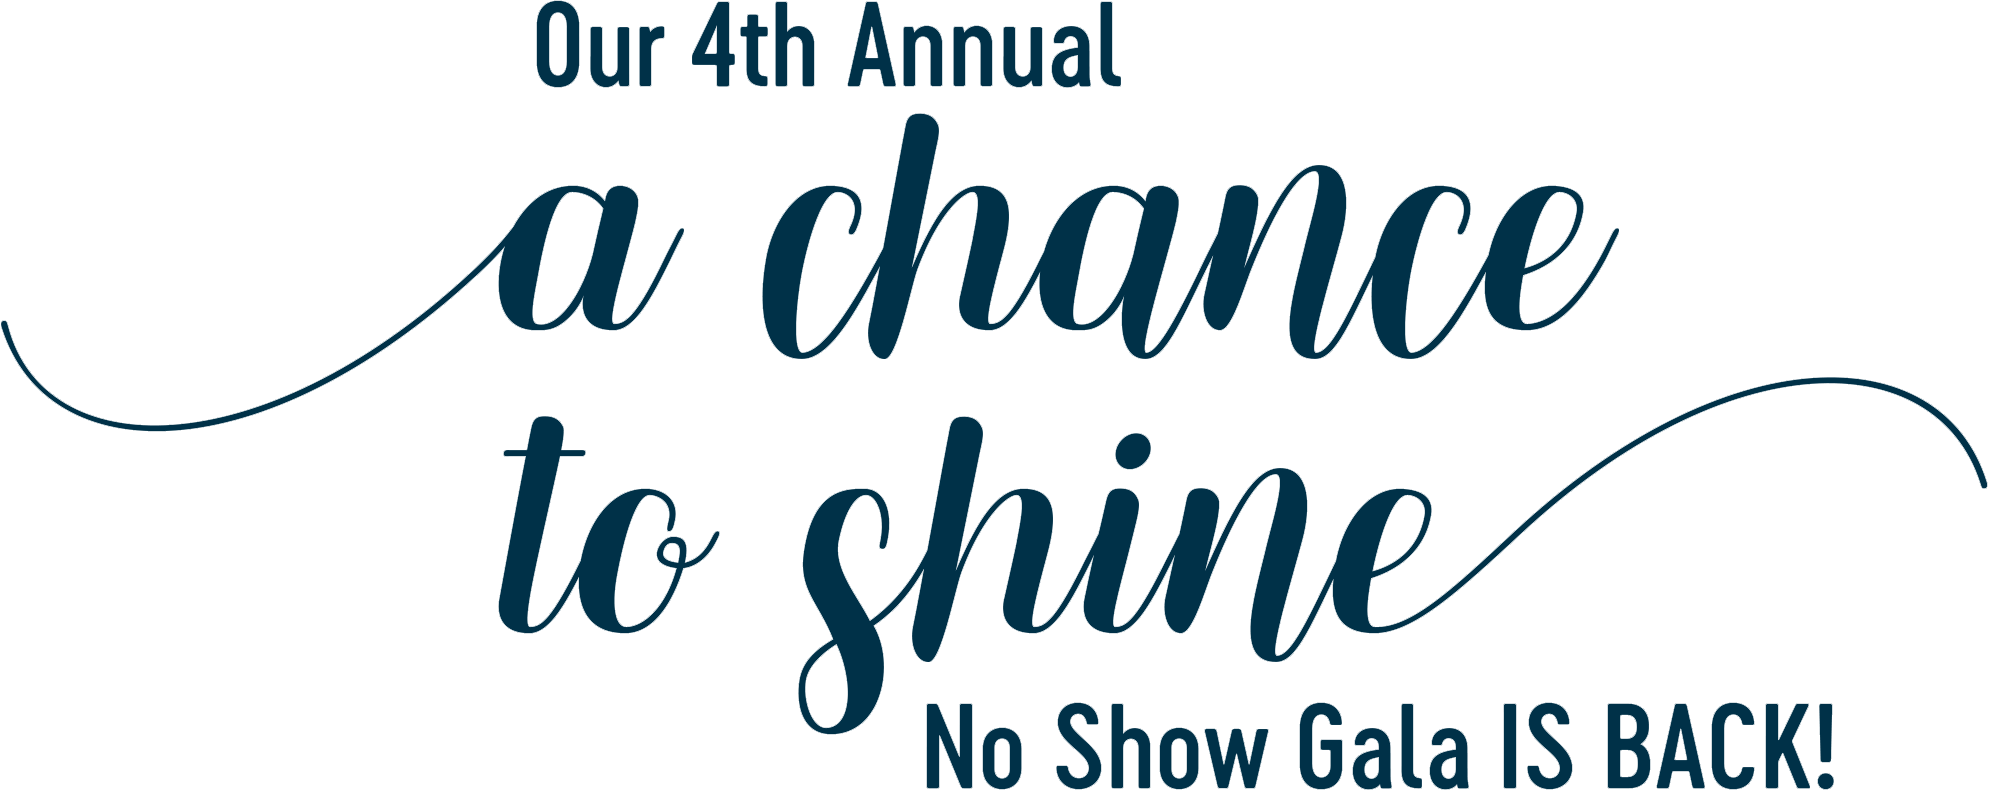 Our 4th Annual A Chance To Shine No Show Gala is back!